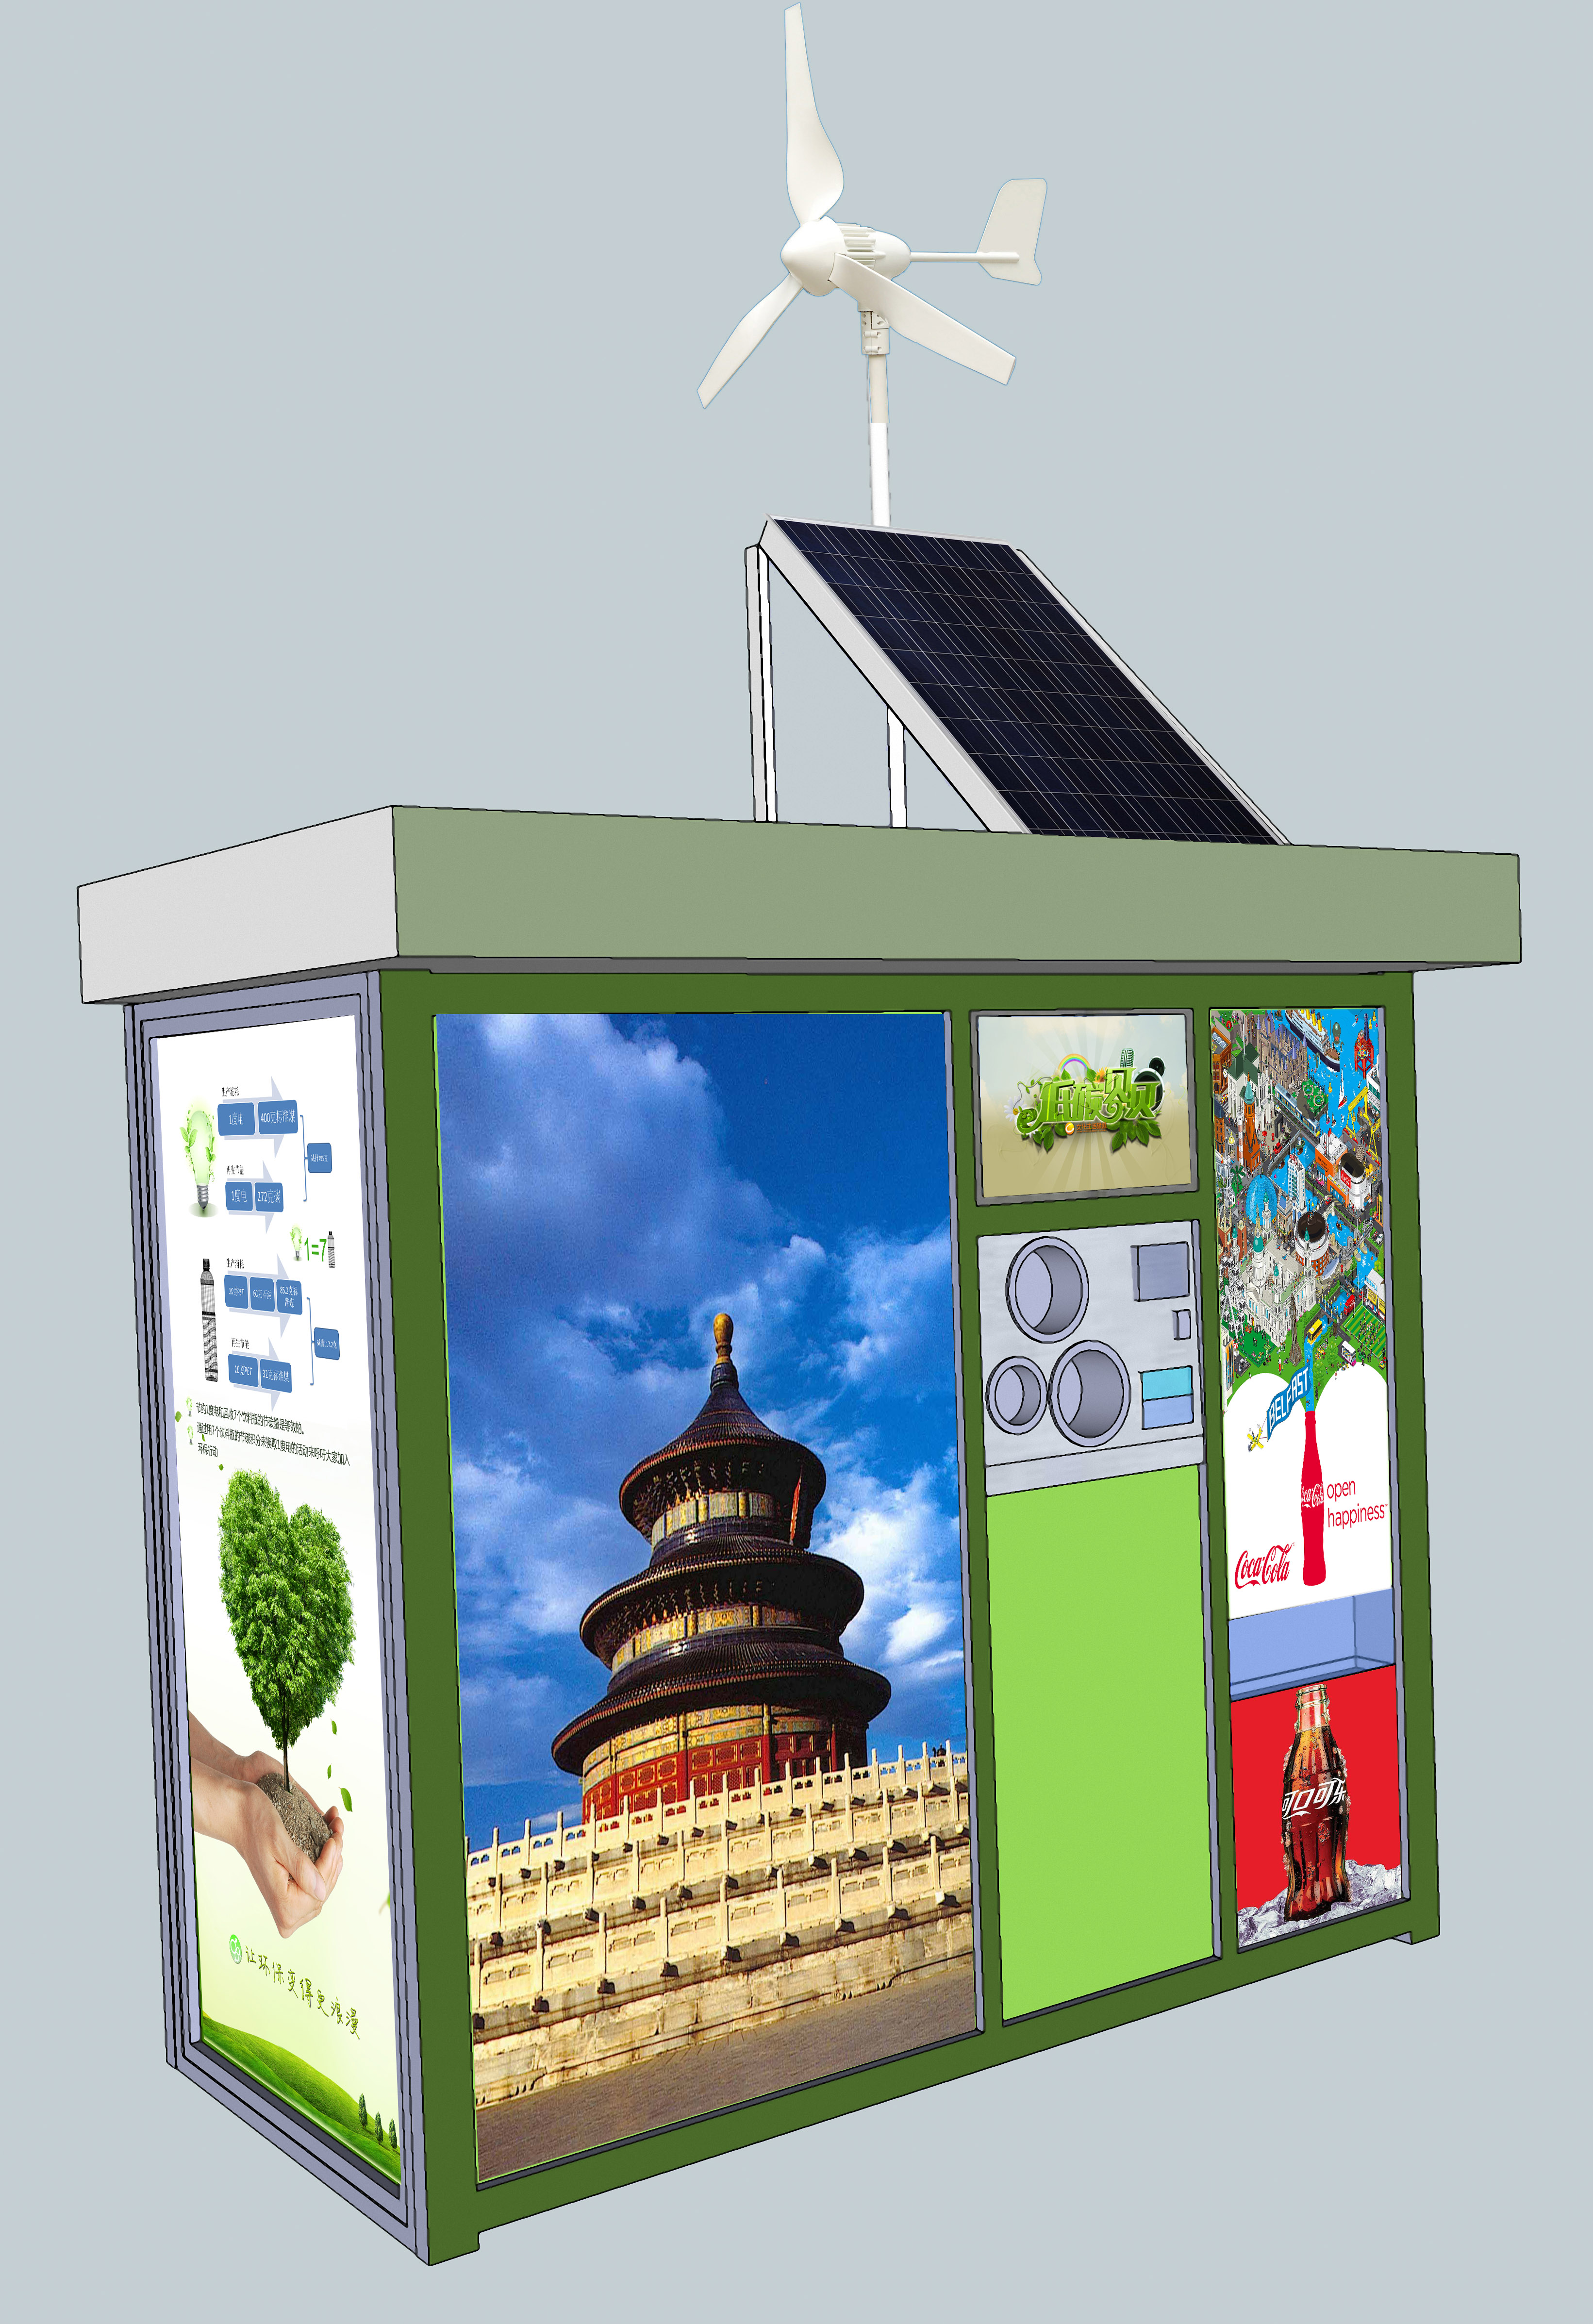 Reverse recycling vending machine for recycle used pet bottles cans glass plastic bottles aluminum cans